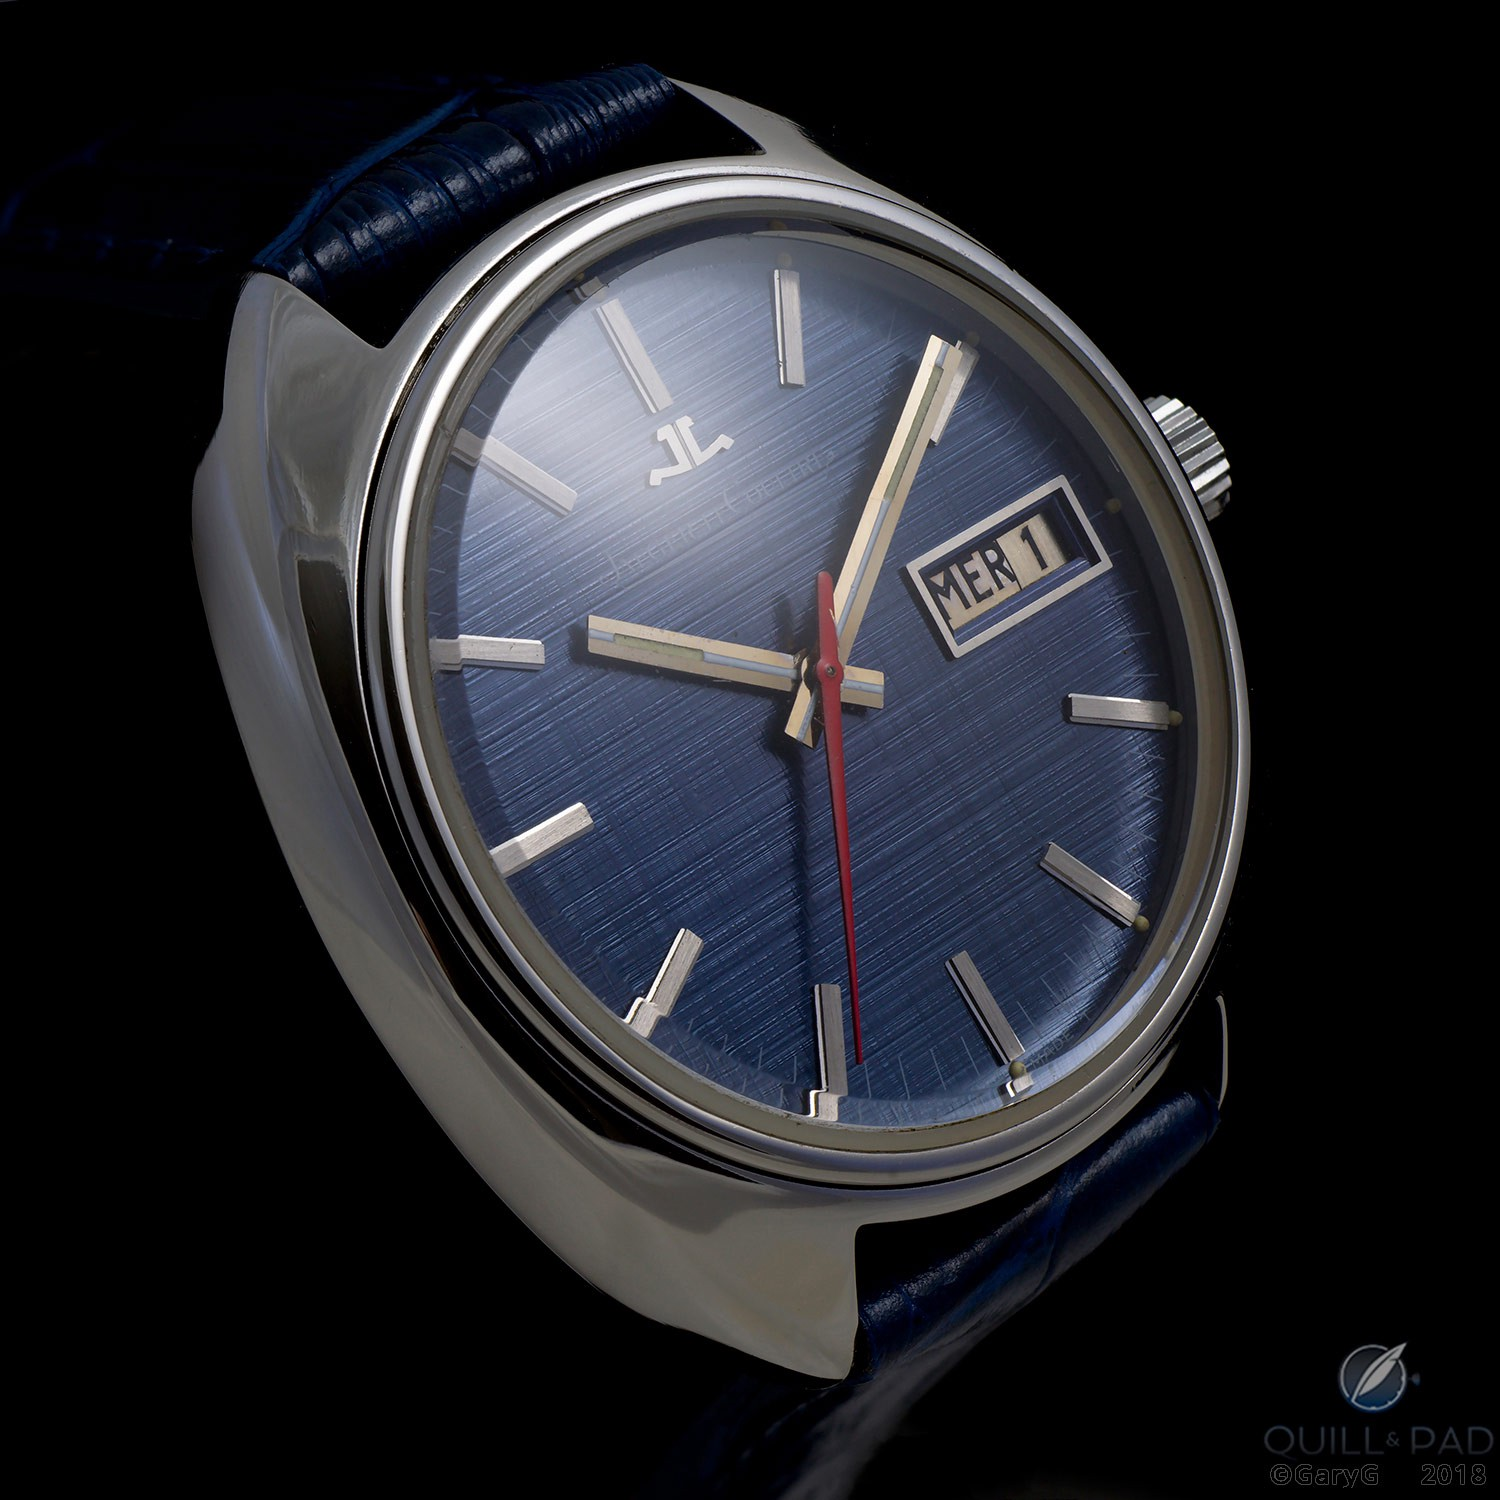 Parting shot: Jaeger-LeCoultre Caliber 906 prototype with blue dial